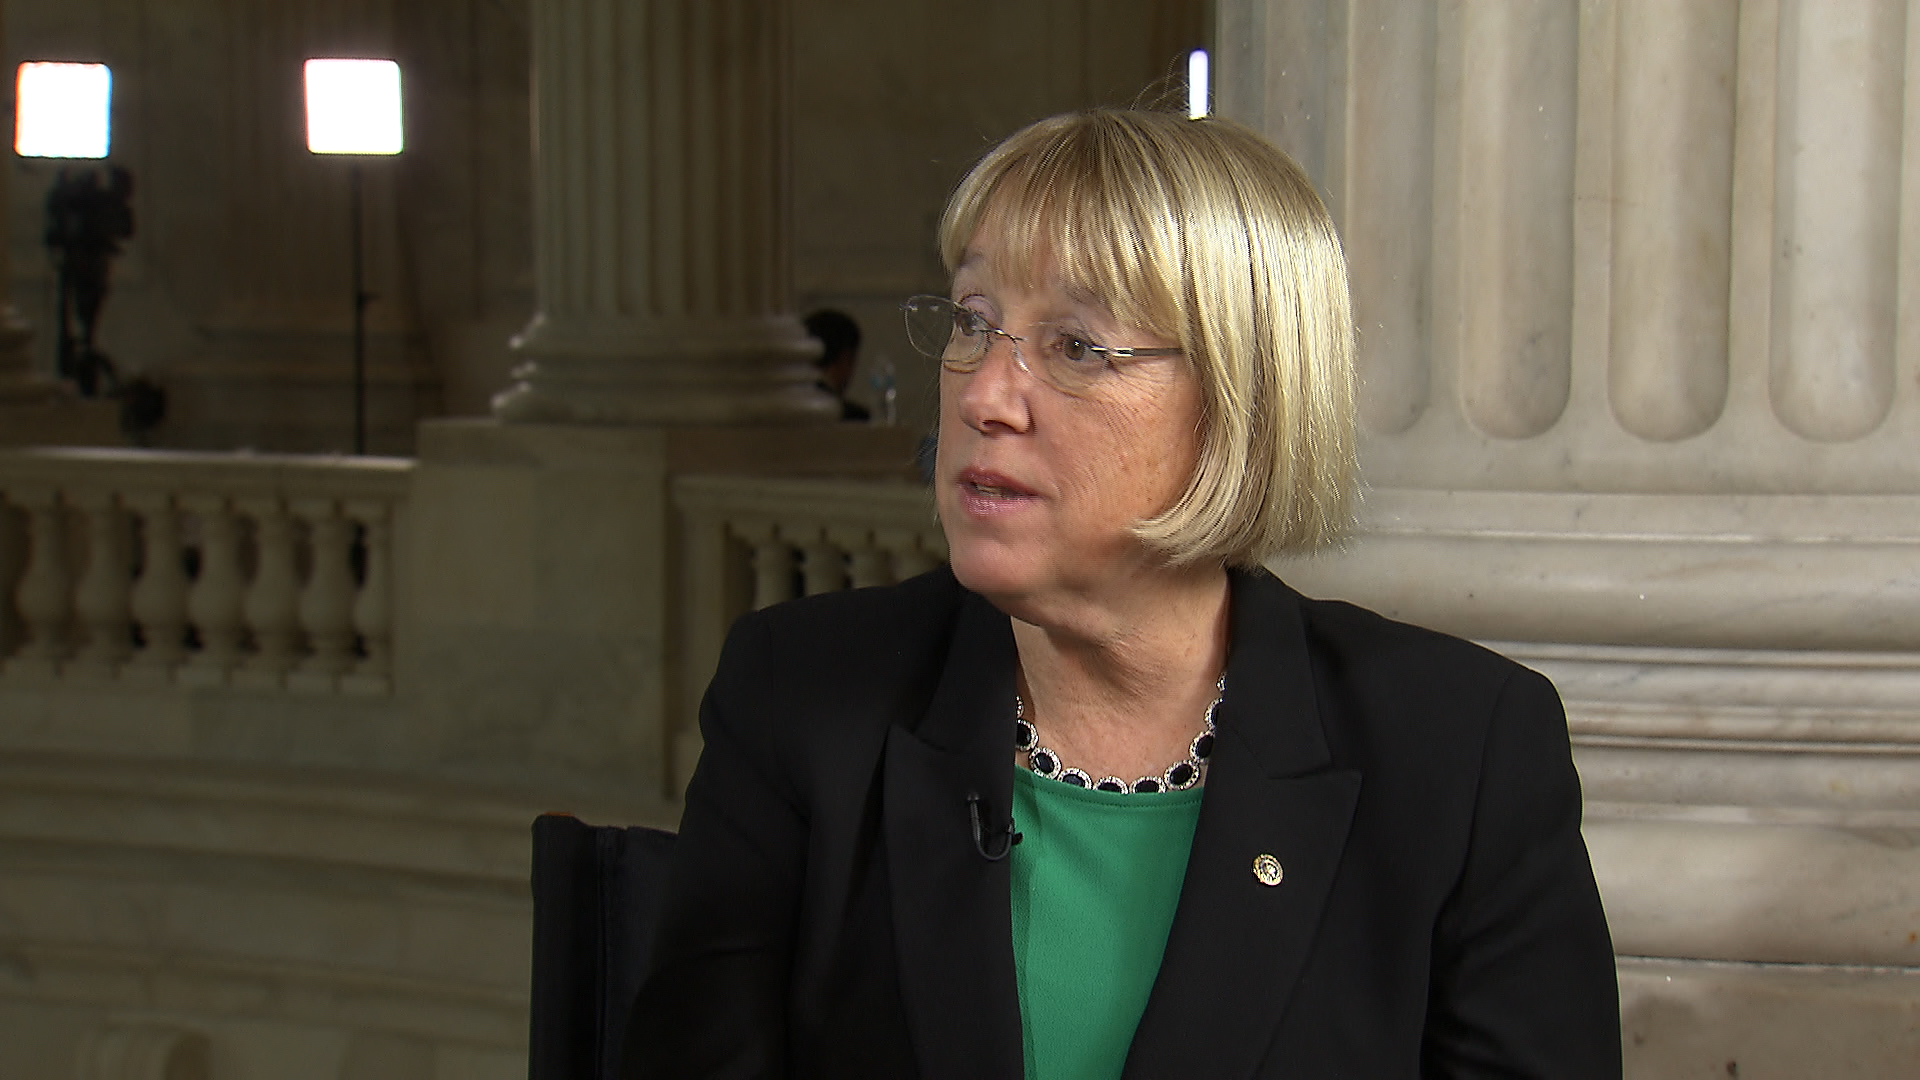 Sen. Murray: Too many people left behind